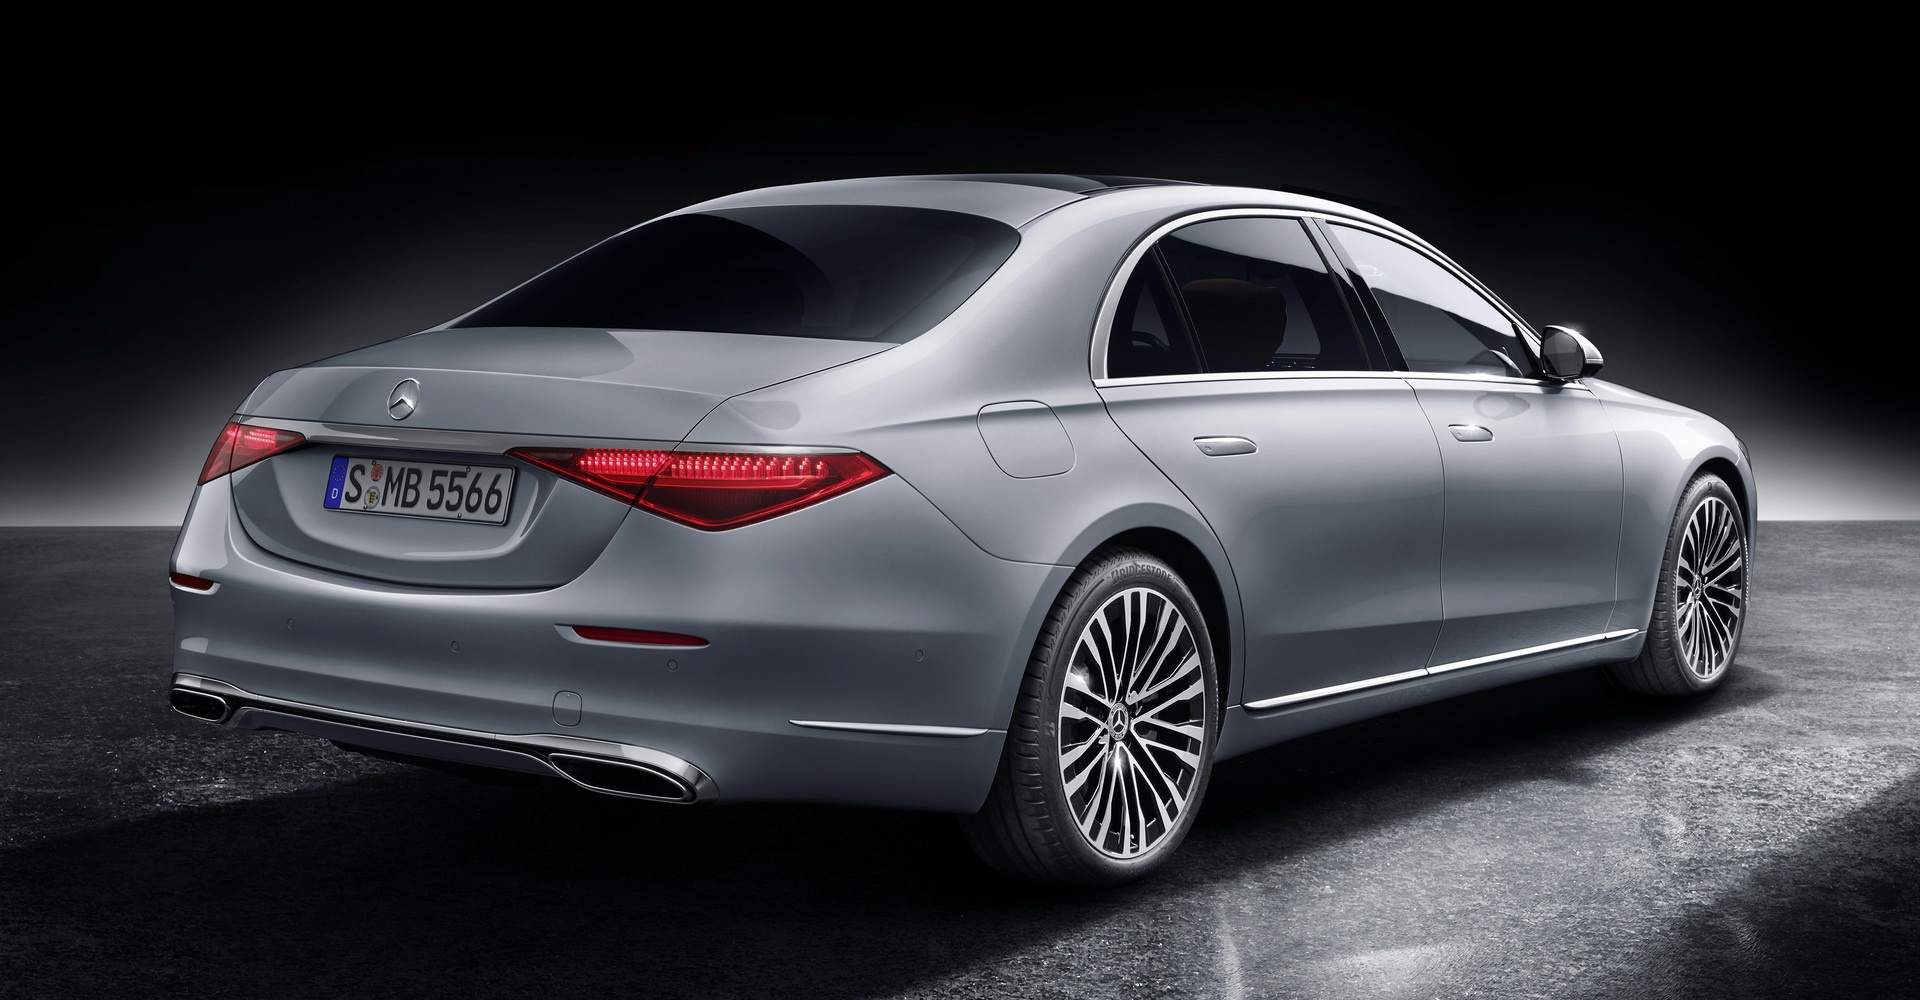 Mercedes-Benz S-Class 2021 co dep hon the he truoc? anh 6